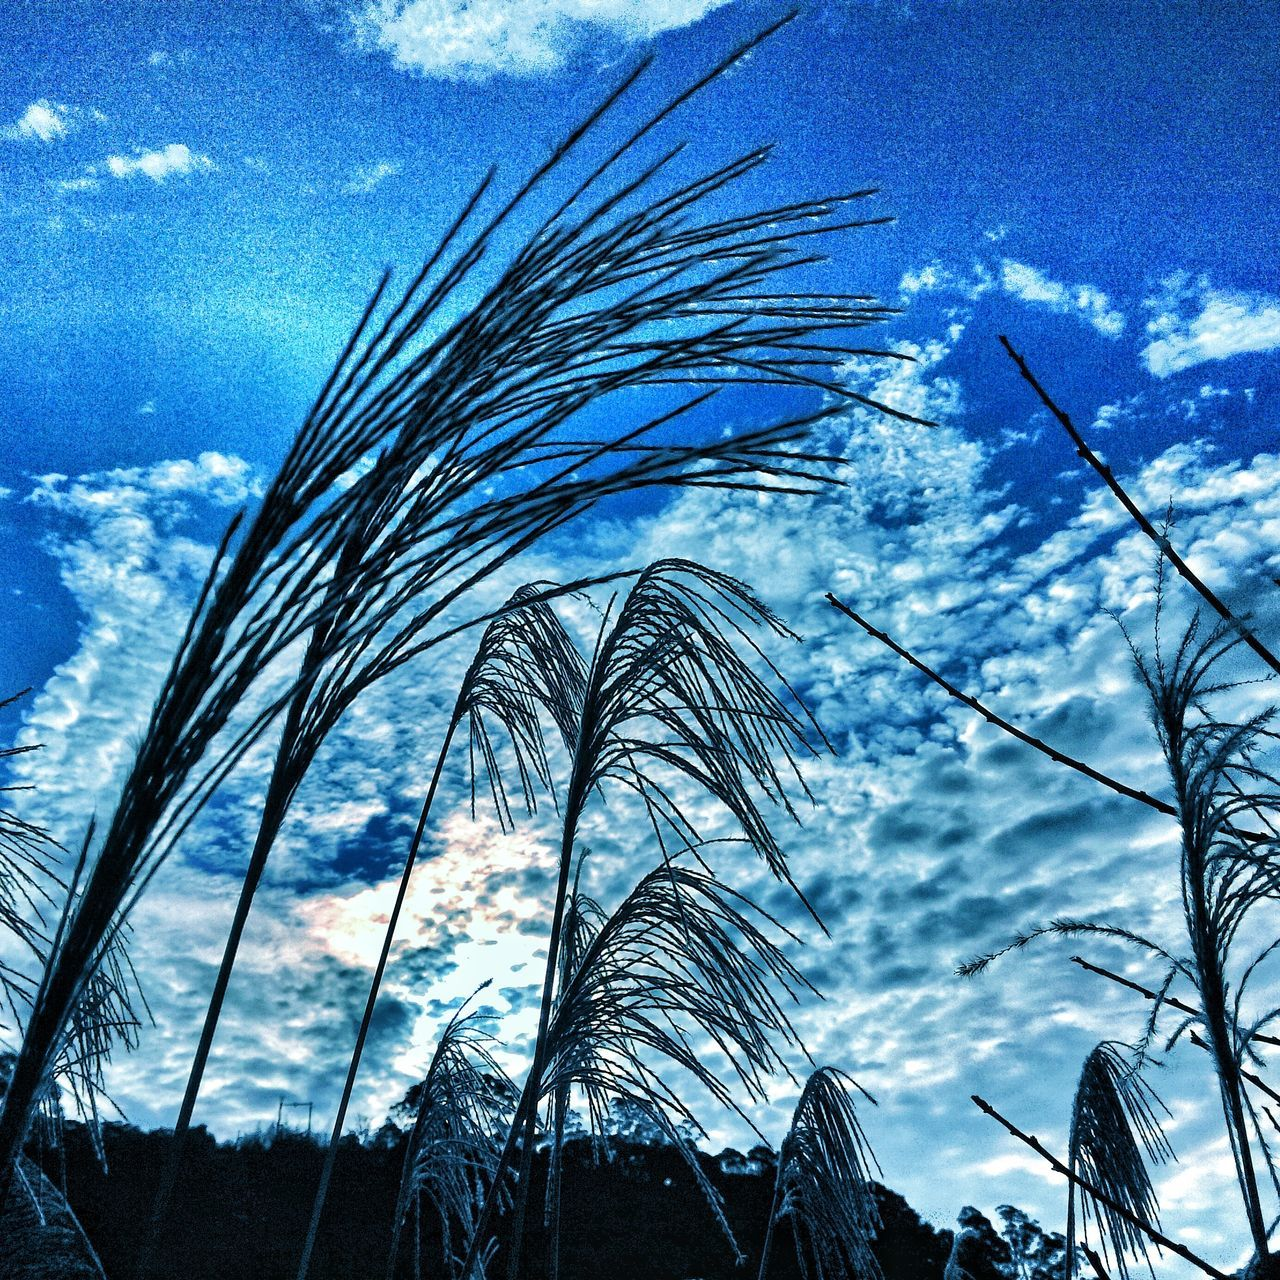 sky, low angle view, growth, nature, cloud - sky, day, no people, outdoors, blue, beauty in nature, plant, close-up